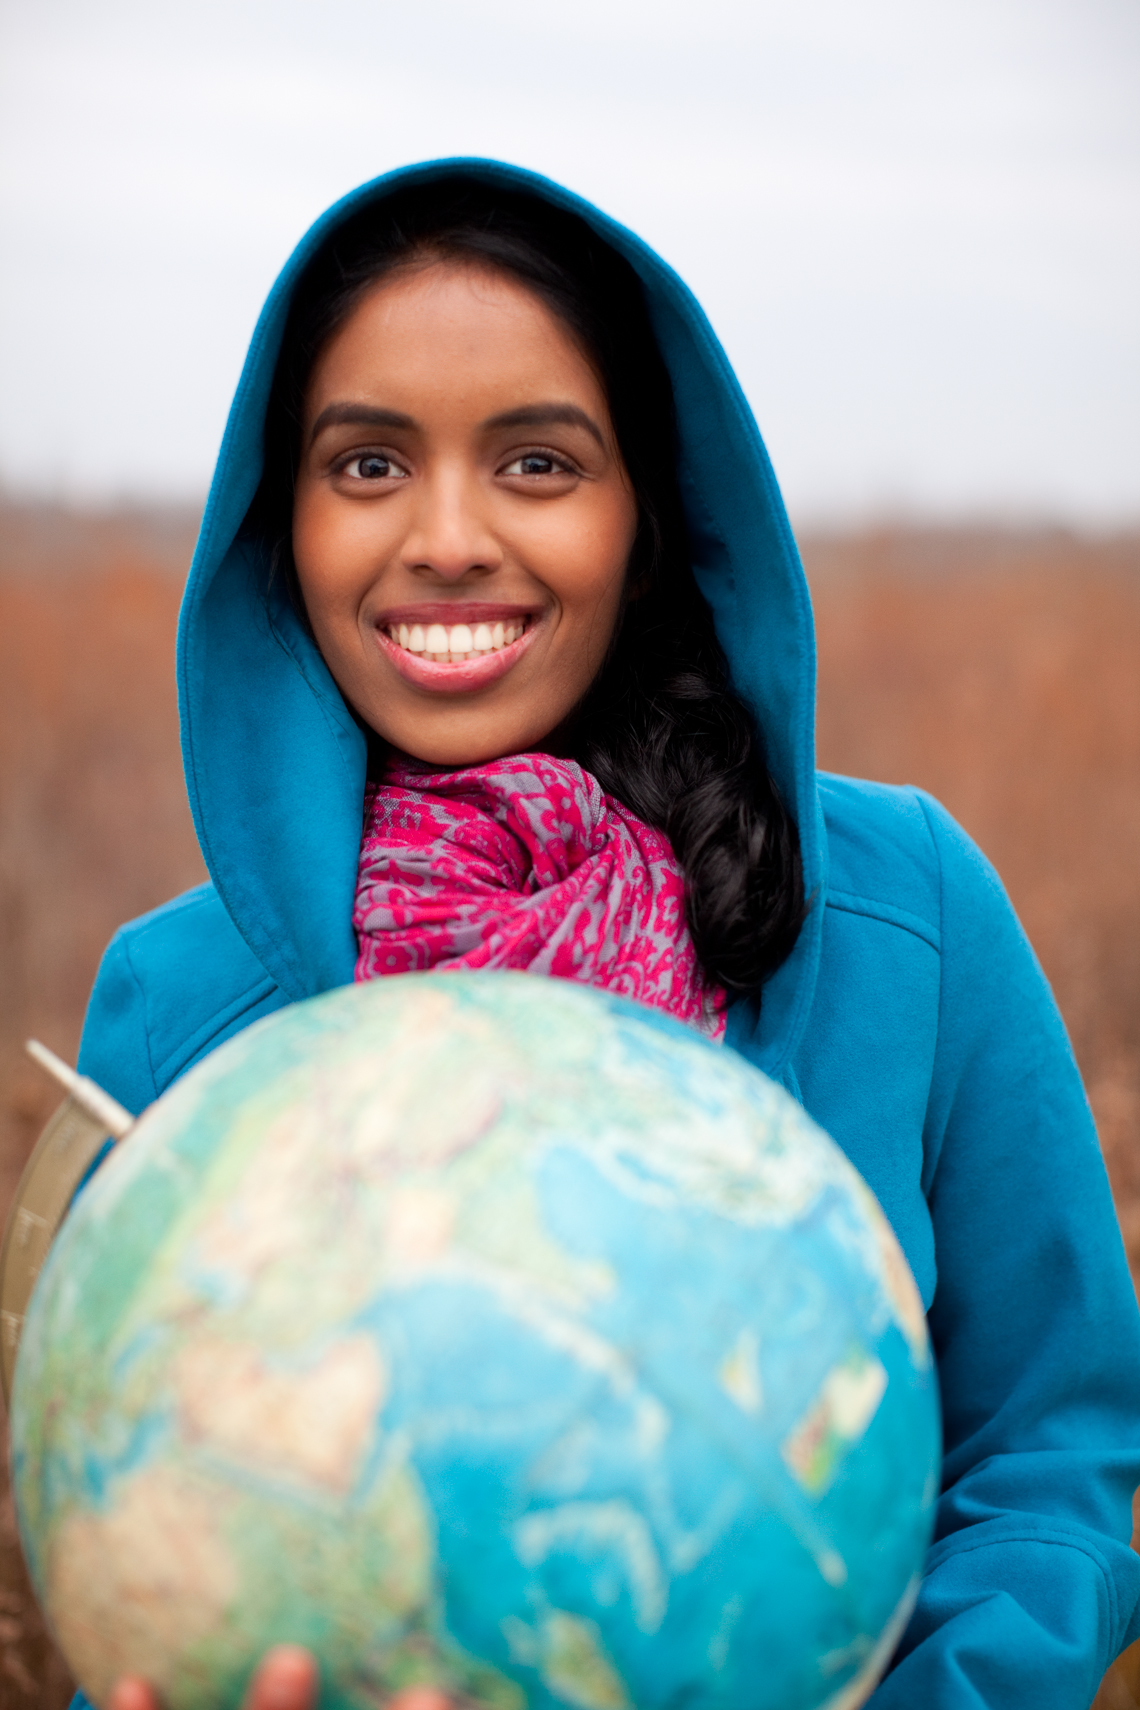 Young Indian girl holding a globe in a bright colorful hood and pink scarf, smiling, teen, happy, standing in a field, Nashville, lifestyle photographer, advertising, stock photo, lifestyle, real life, happy, portrait photographer